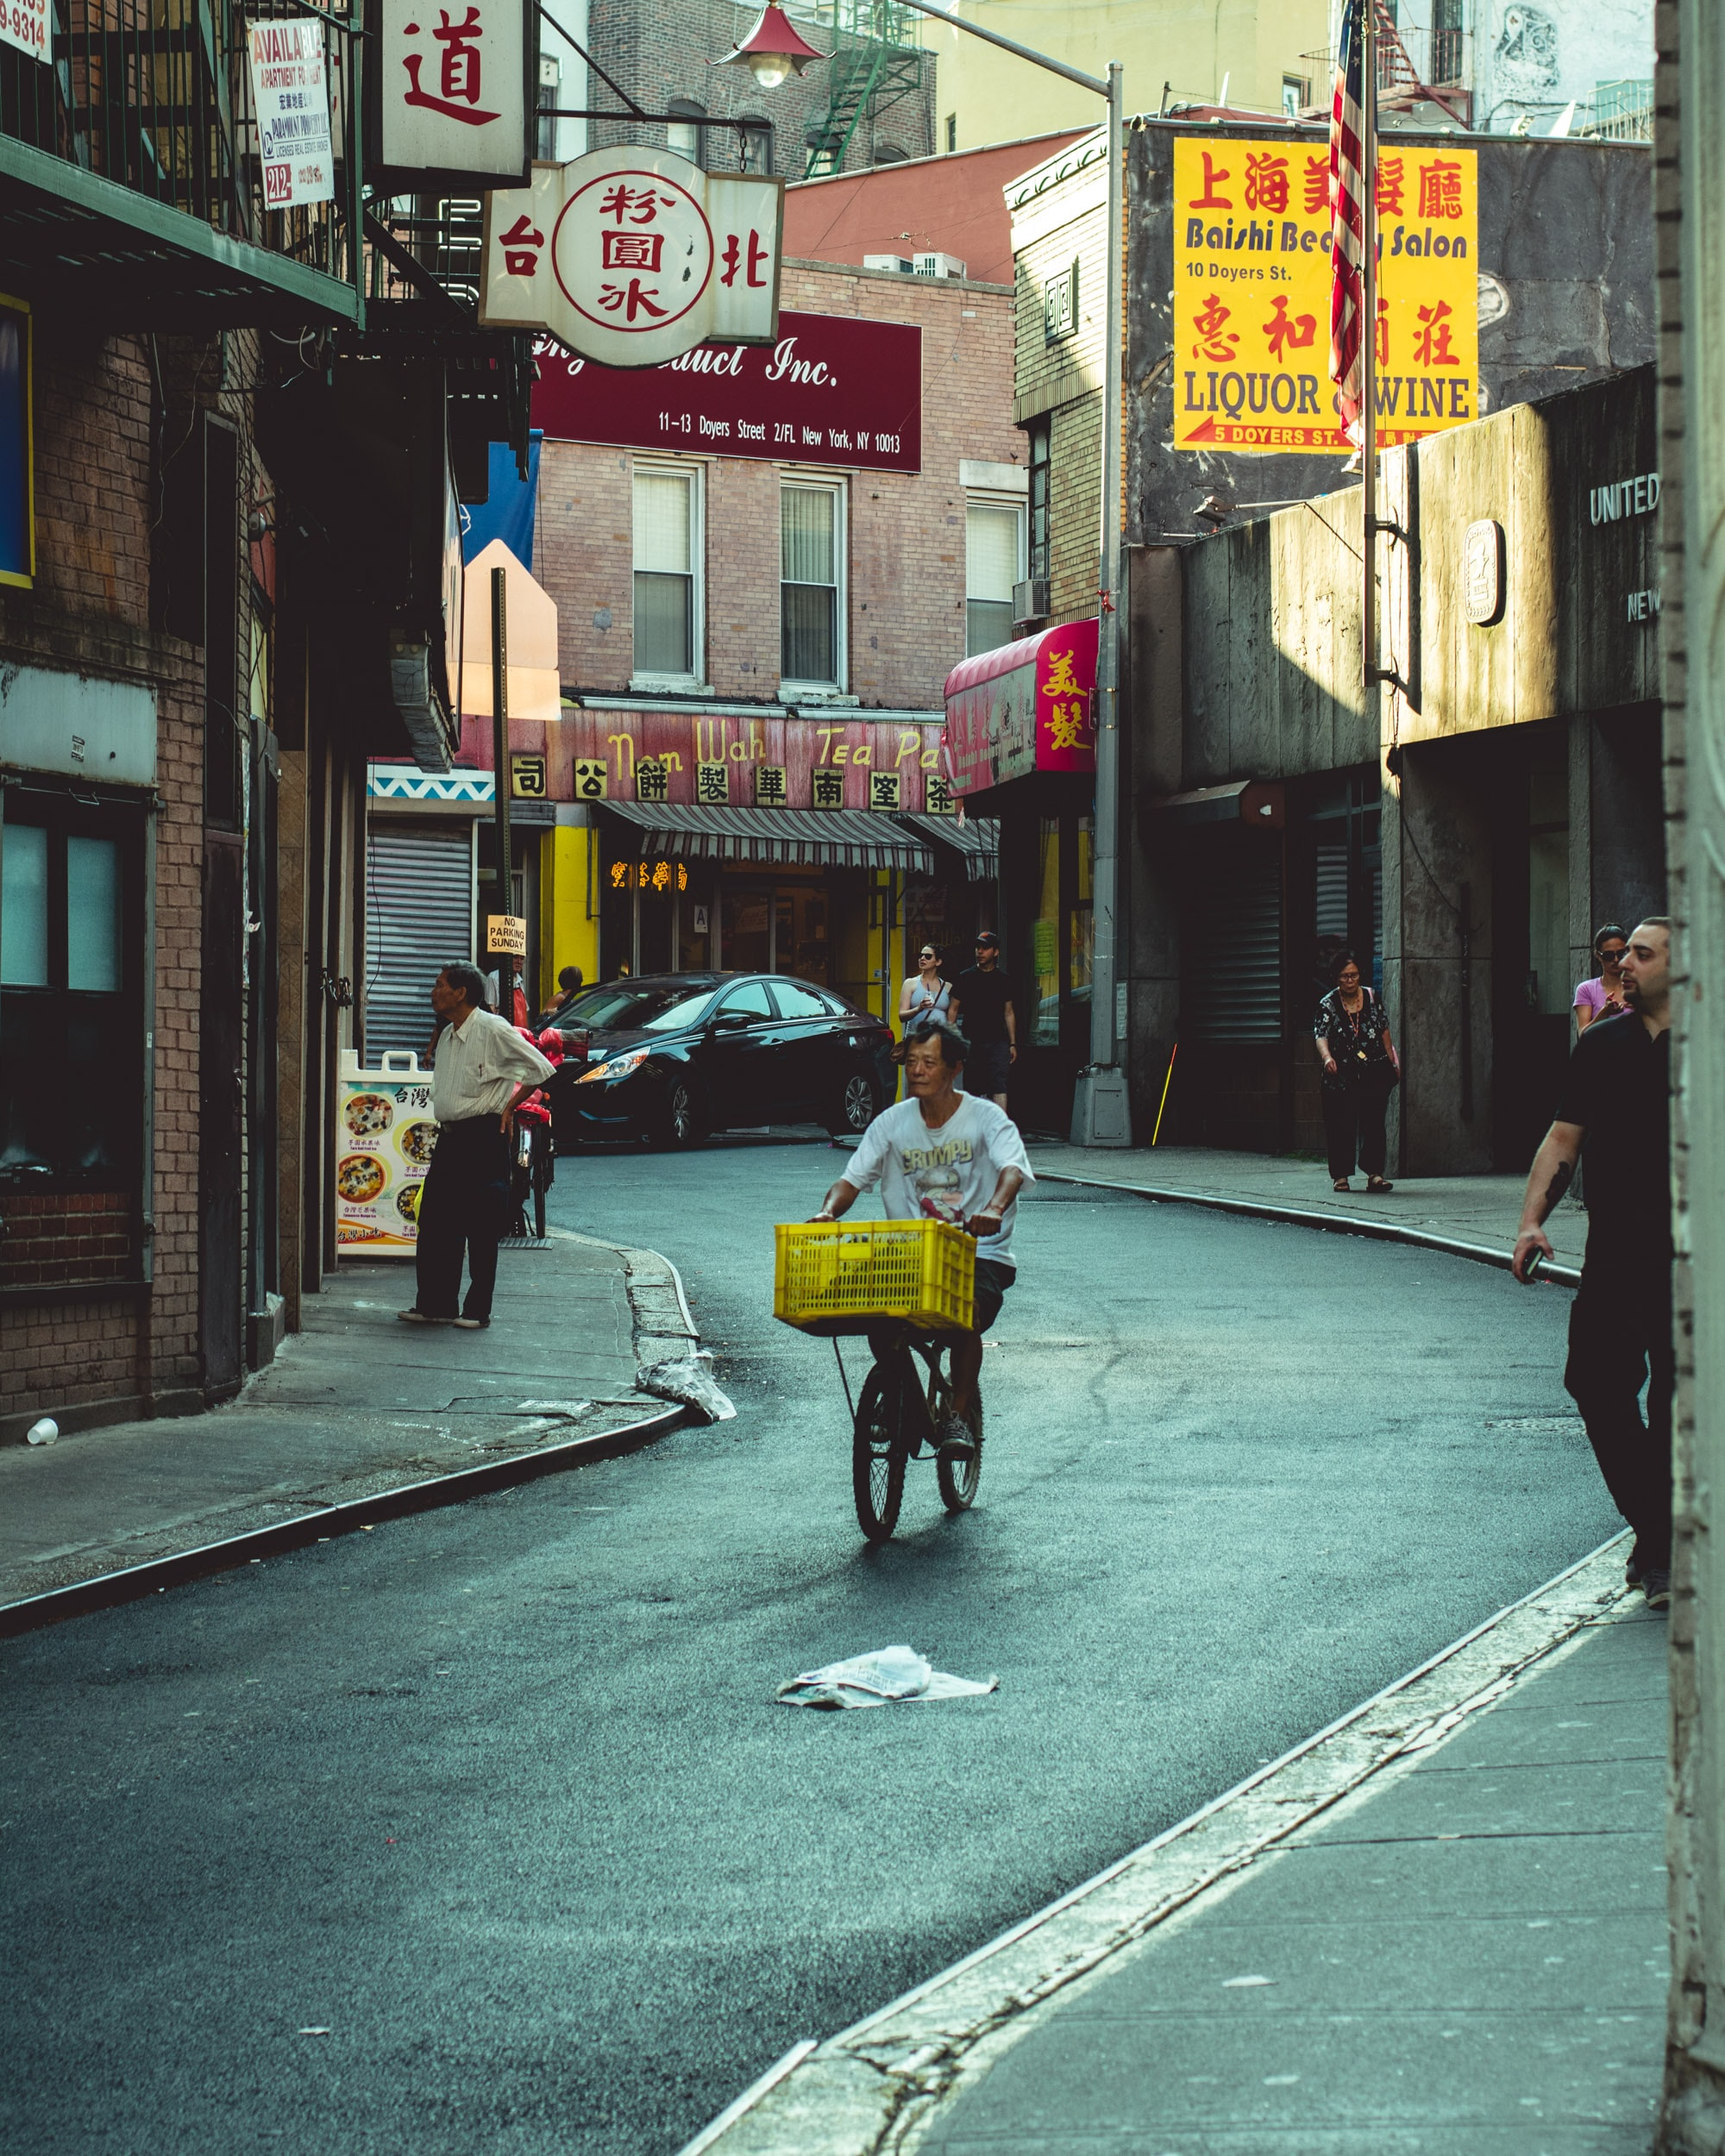 man riding bicycle in an alley